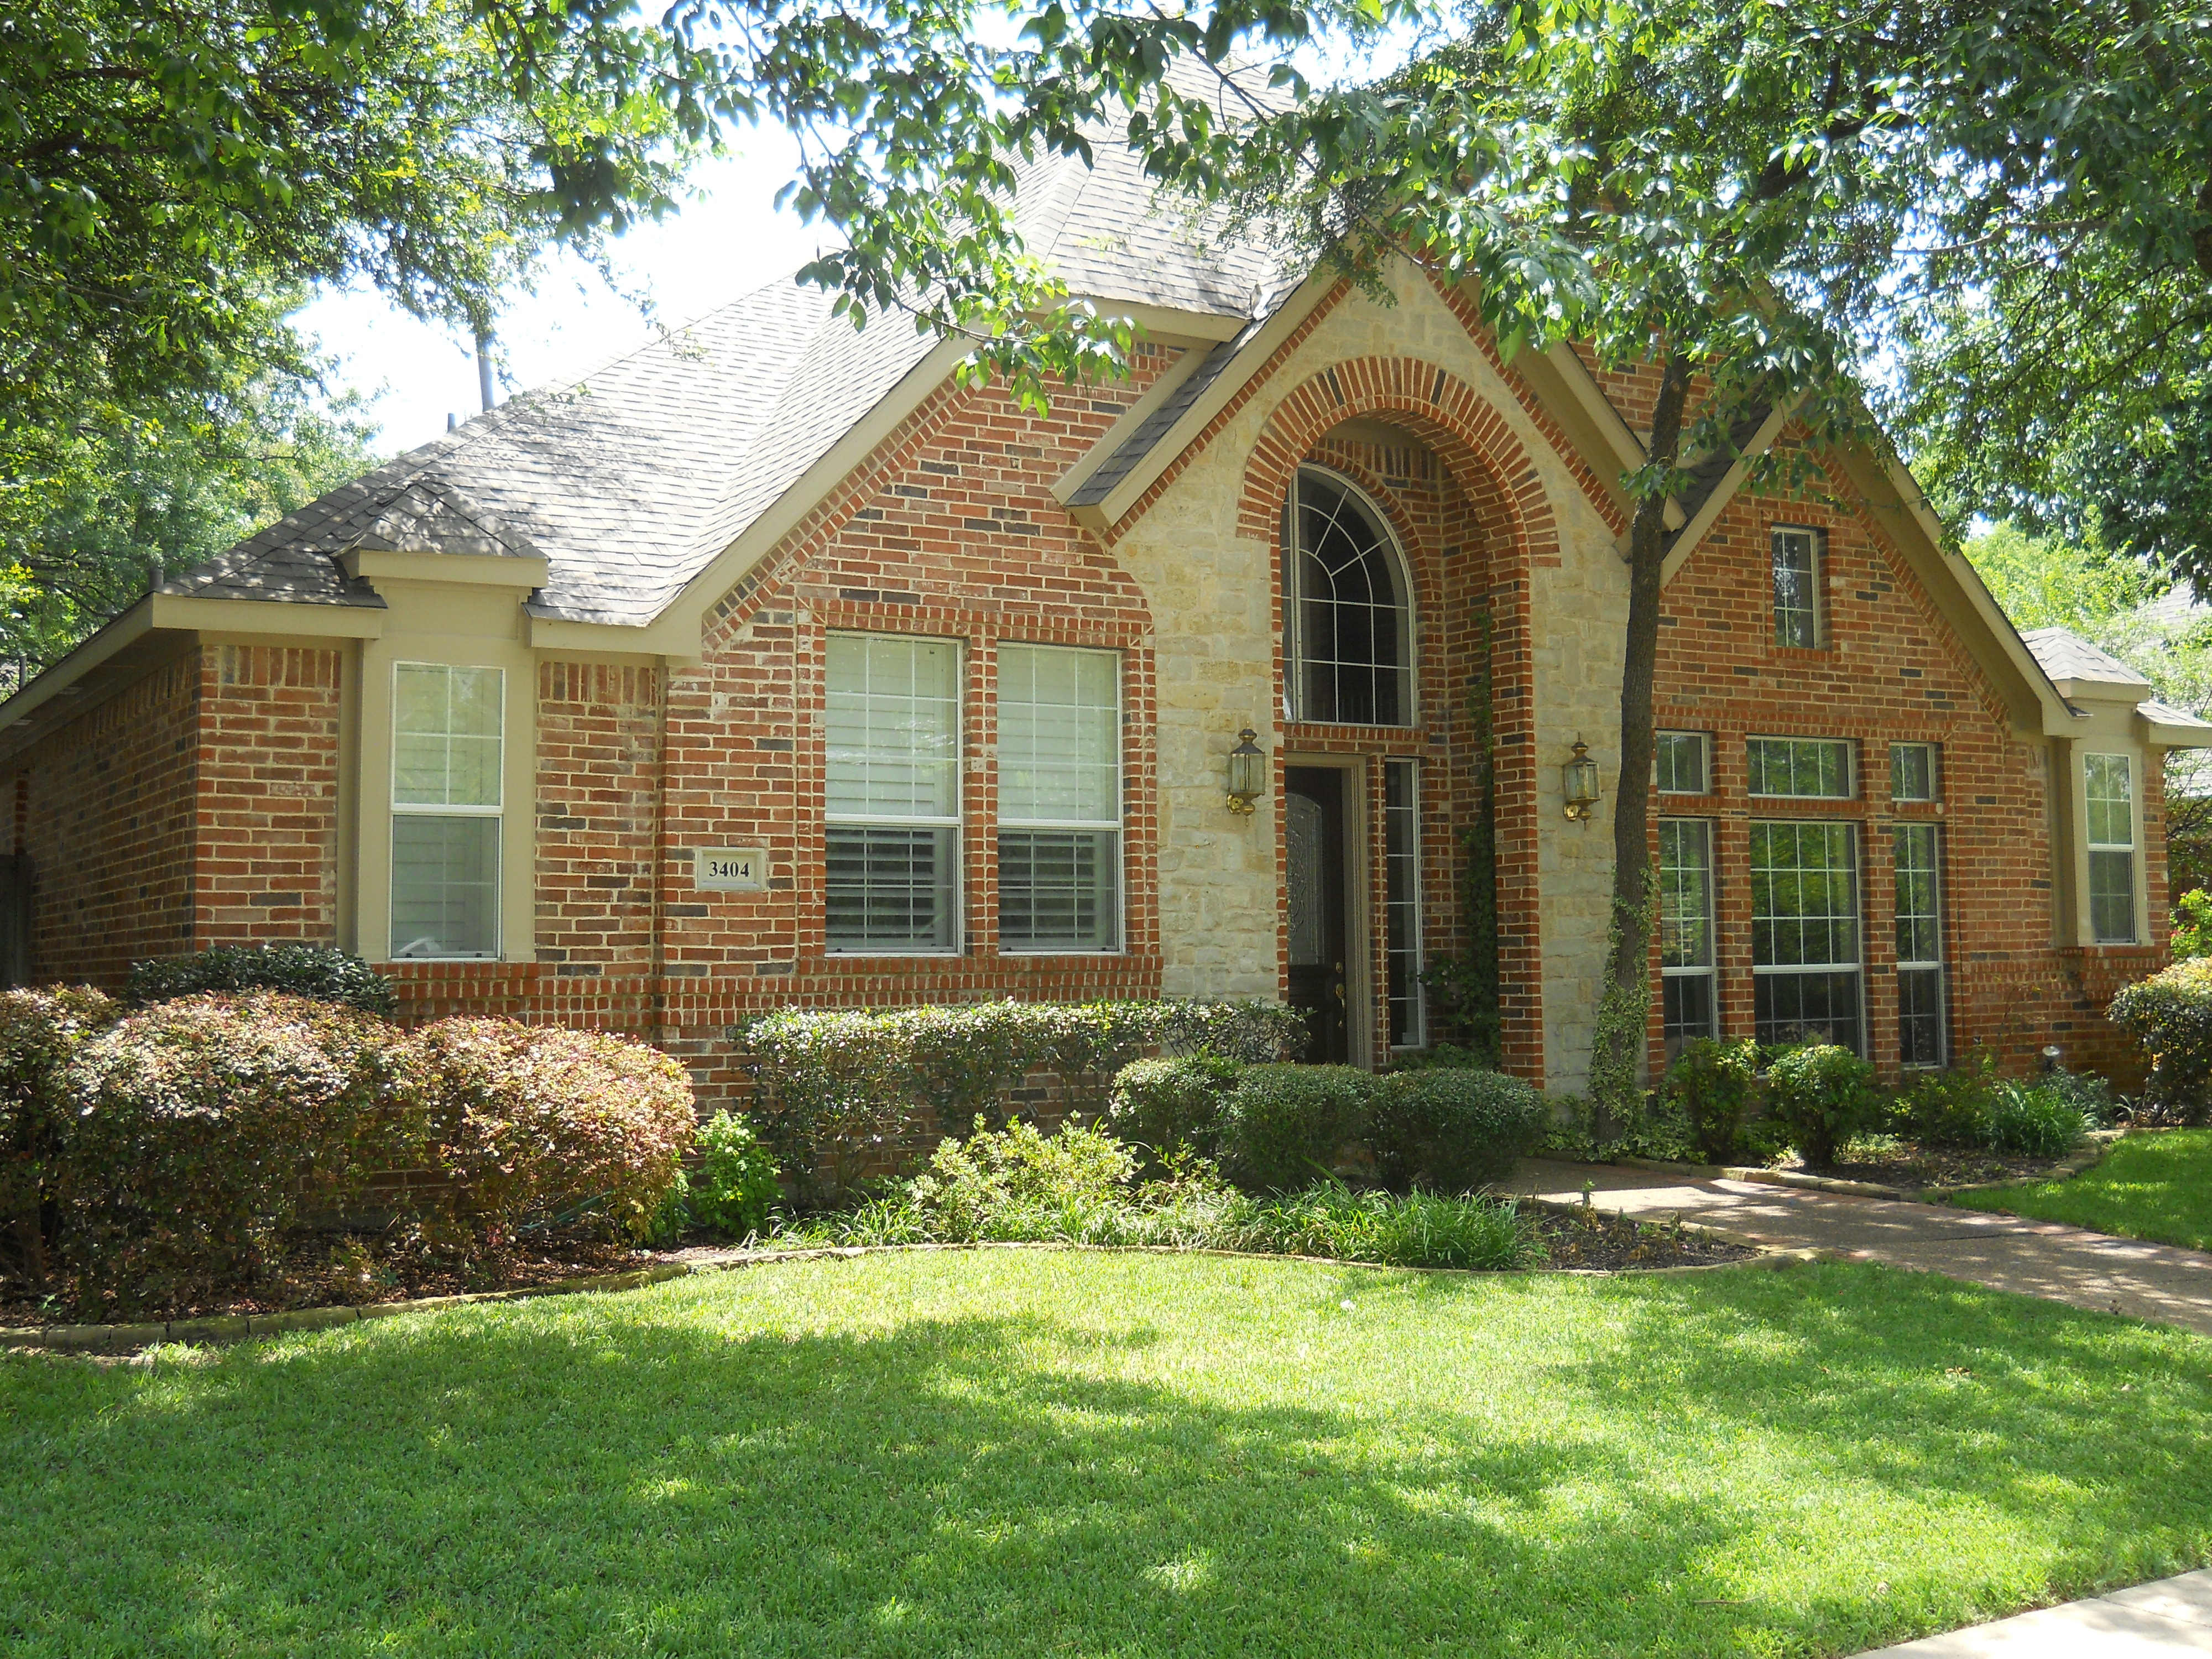 Fresh Coat Painters of Flower Mound Reviews 2201 Long Prairie Rd 107 762